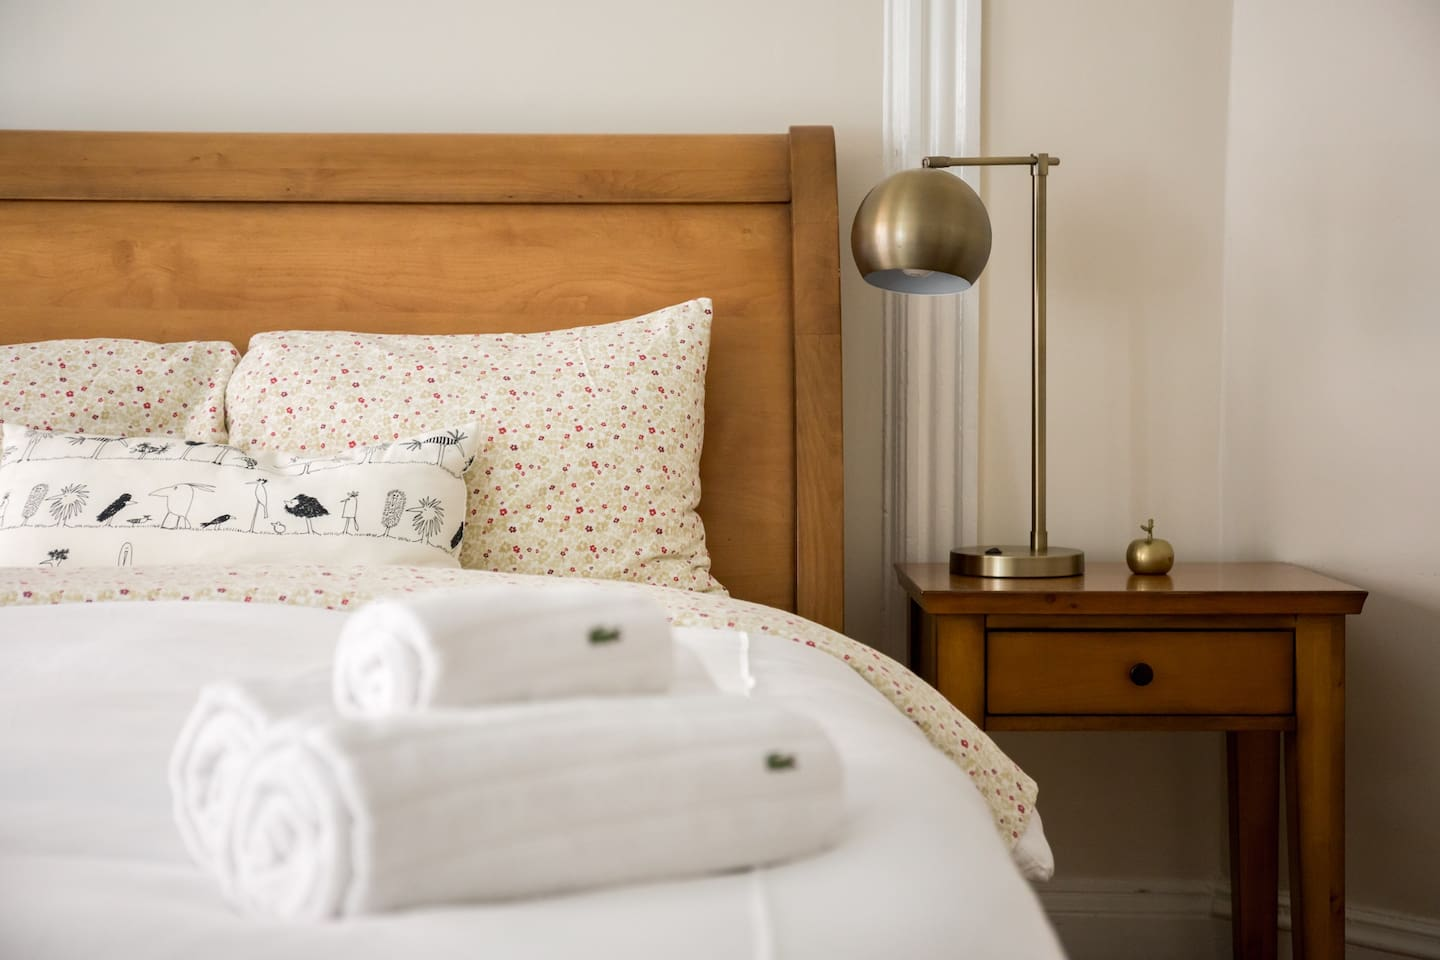 The sleigh bed is covered in a fluffy duvet in fall and winter or a lighter blanket in the warm months.